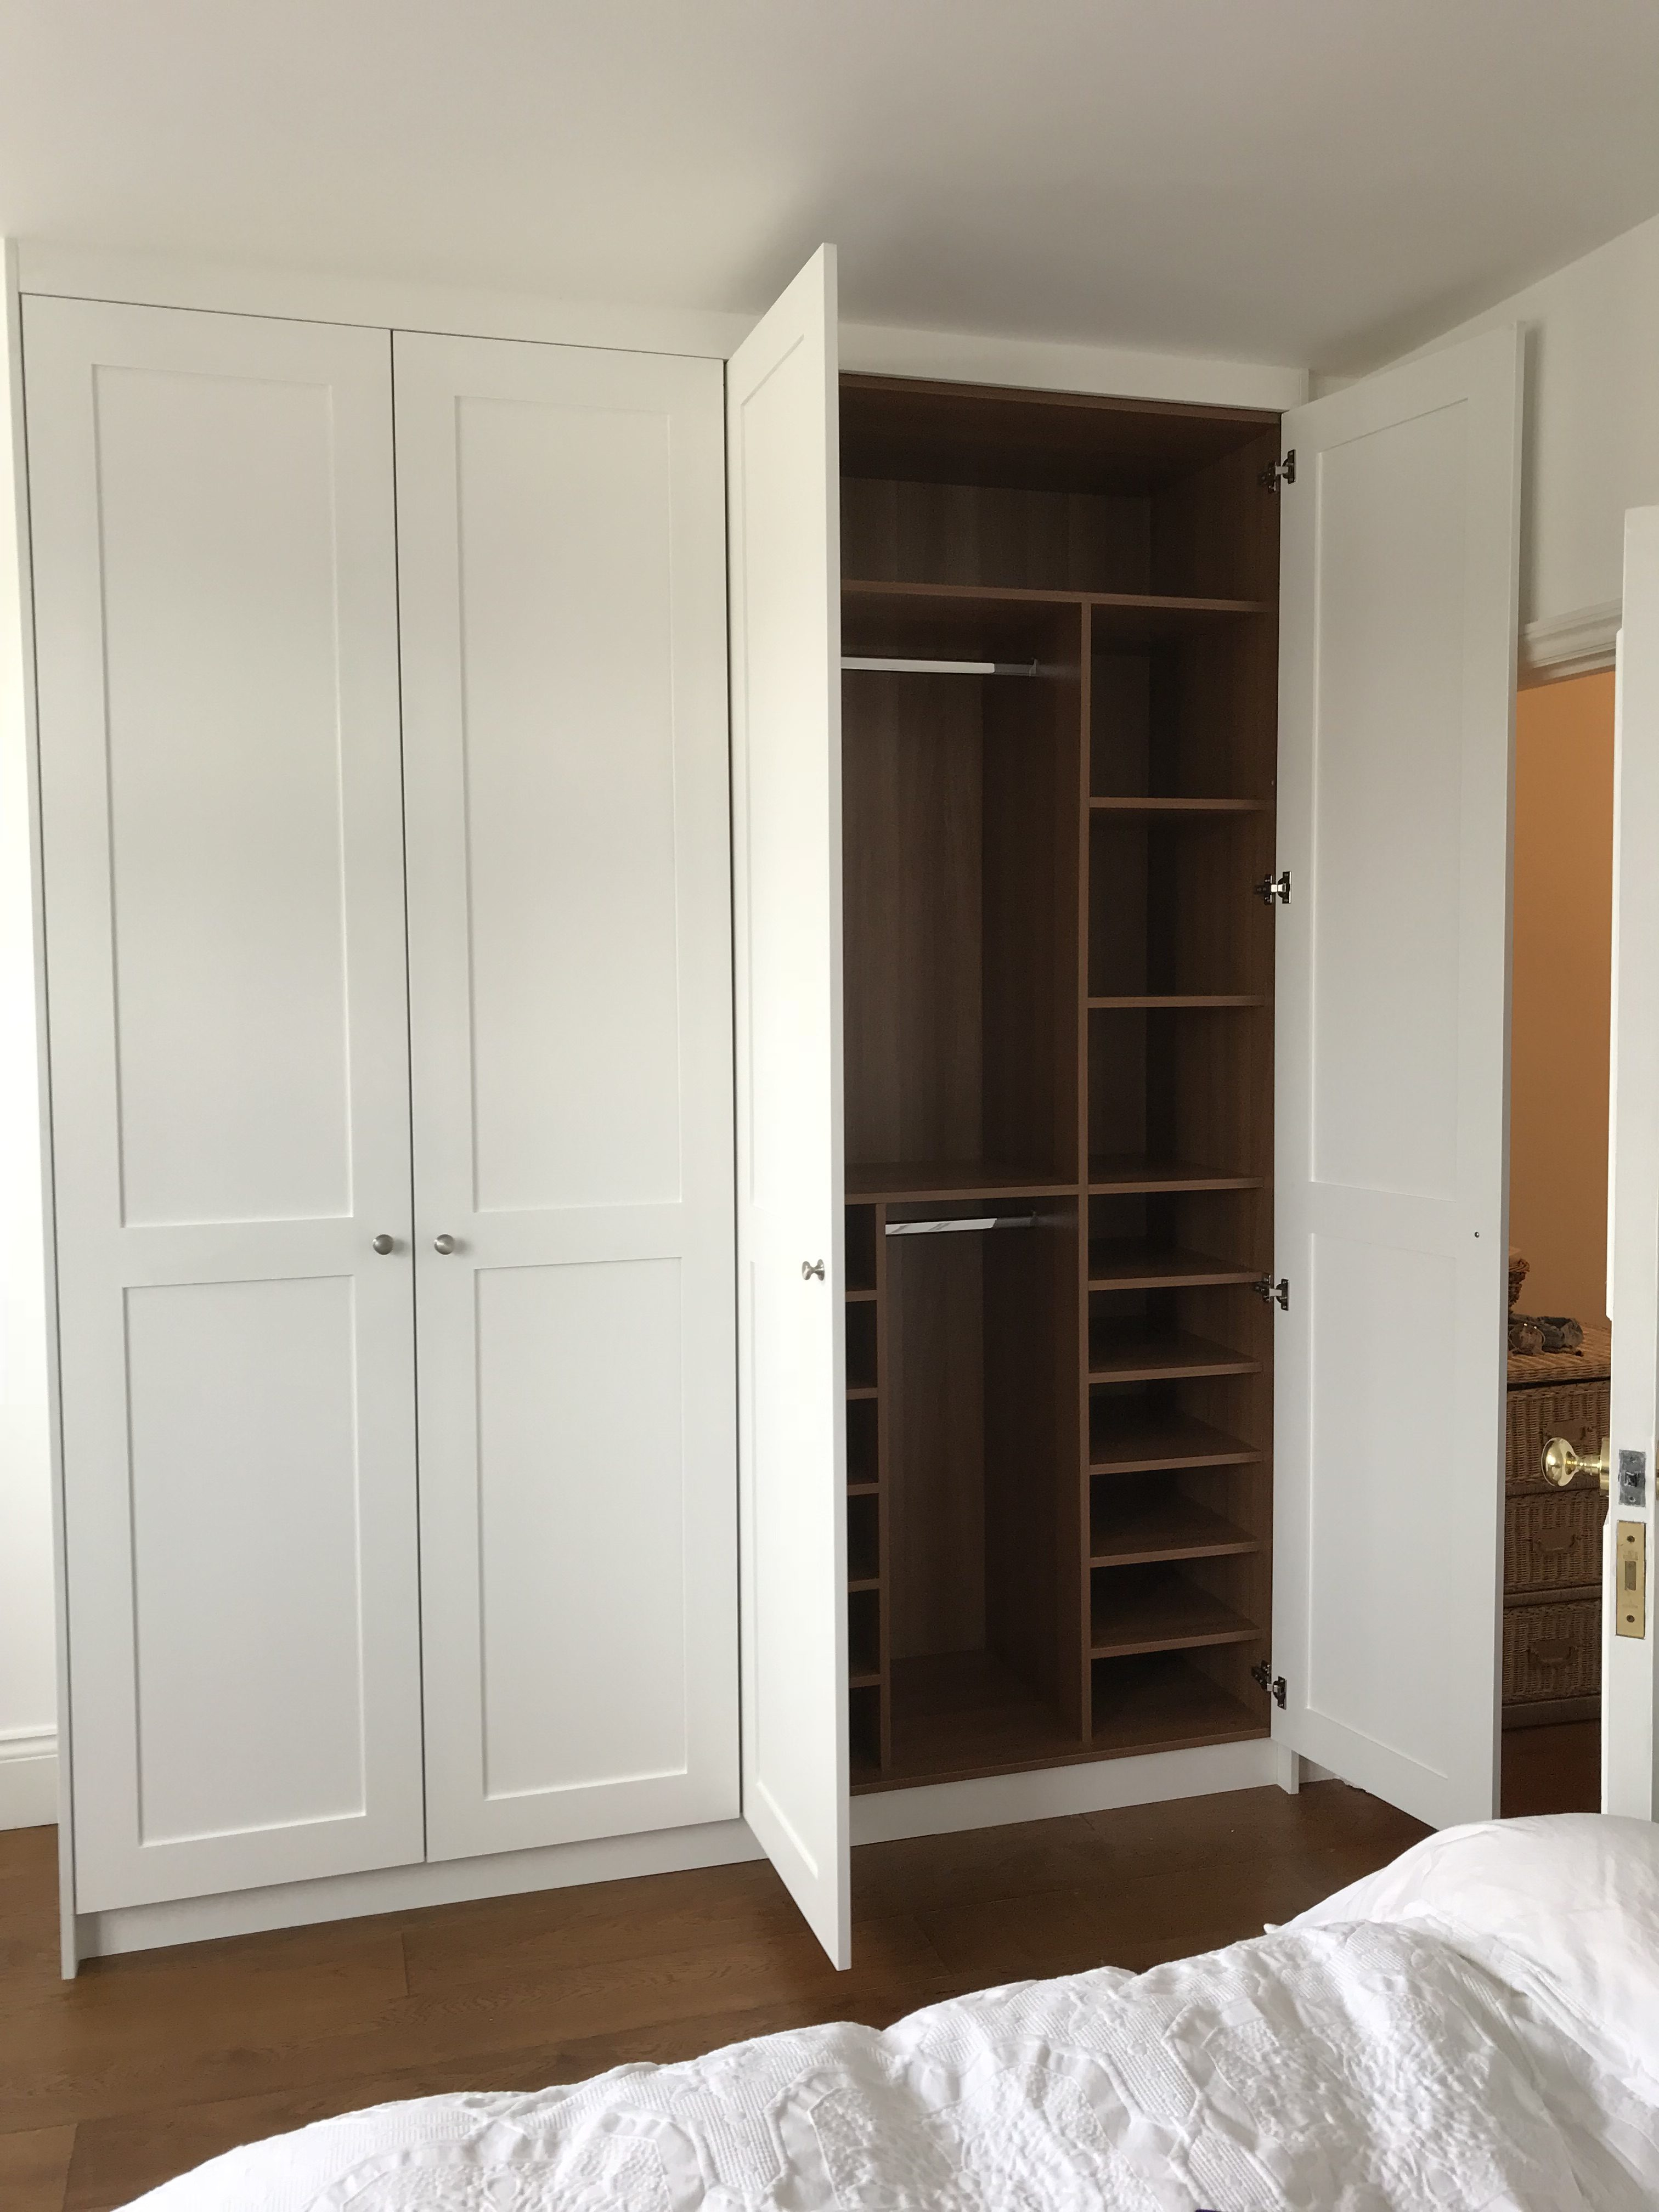 large wardrobes